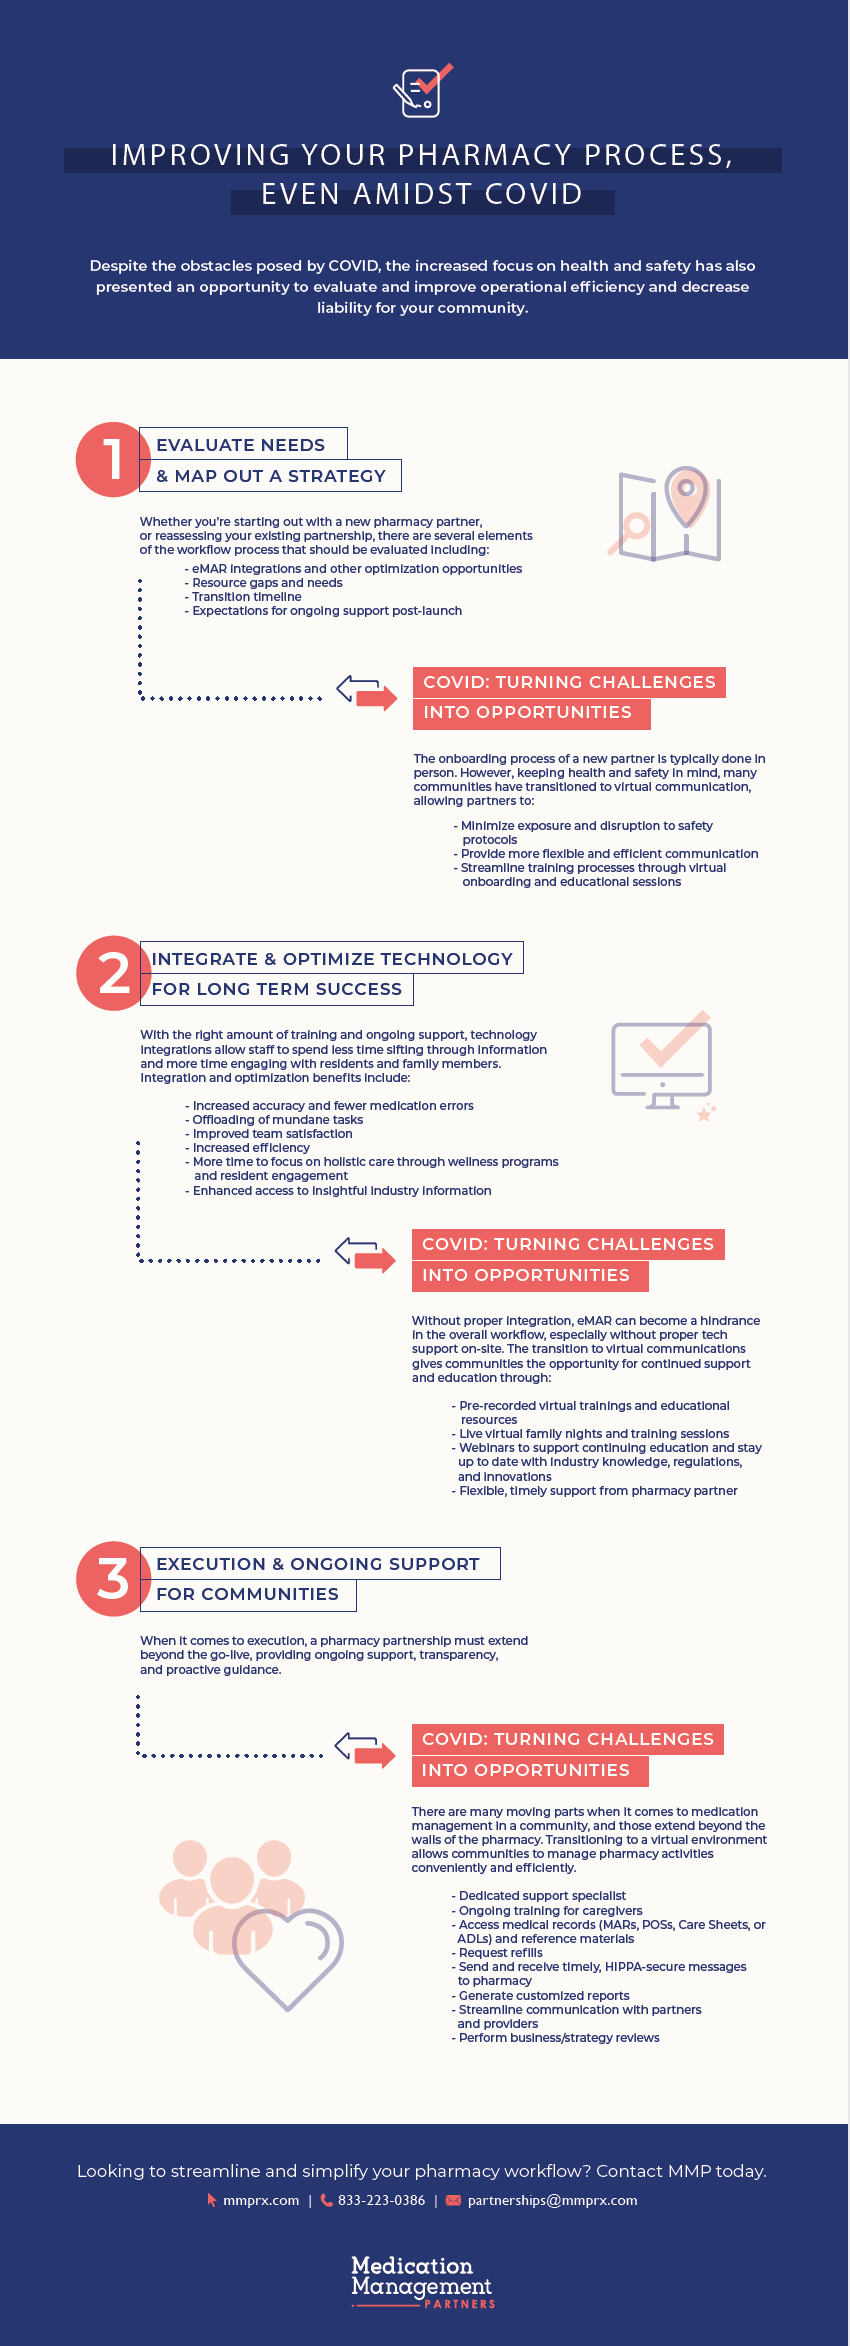 Infographic for Improving Your Pharmacy Amidst COVID